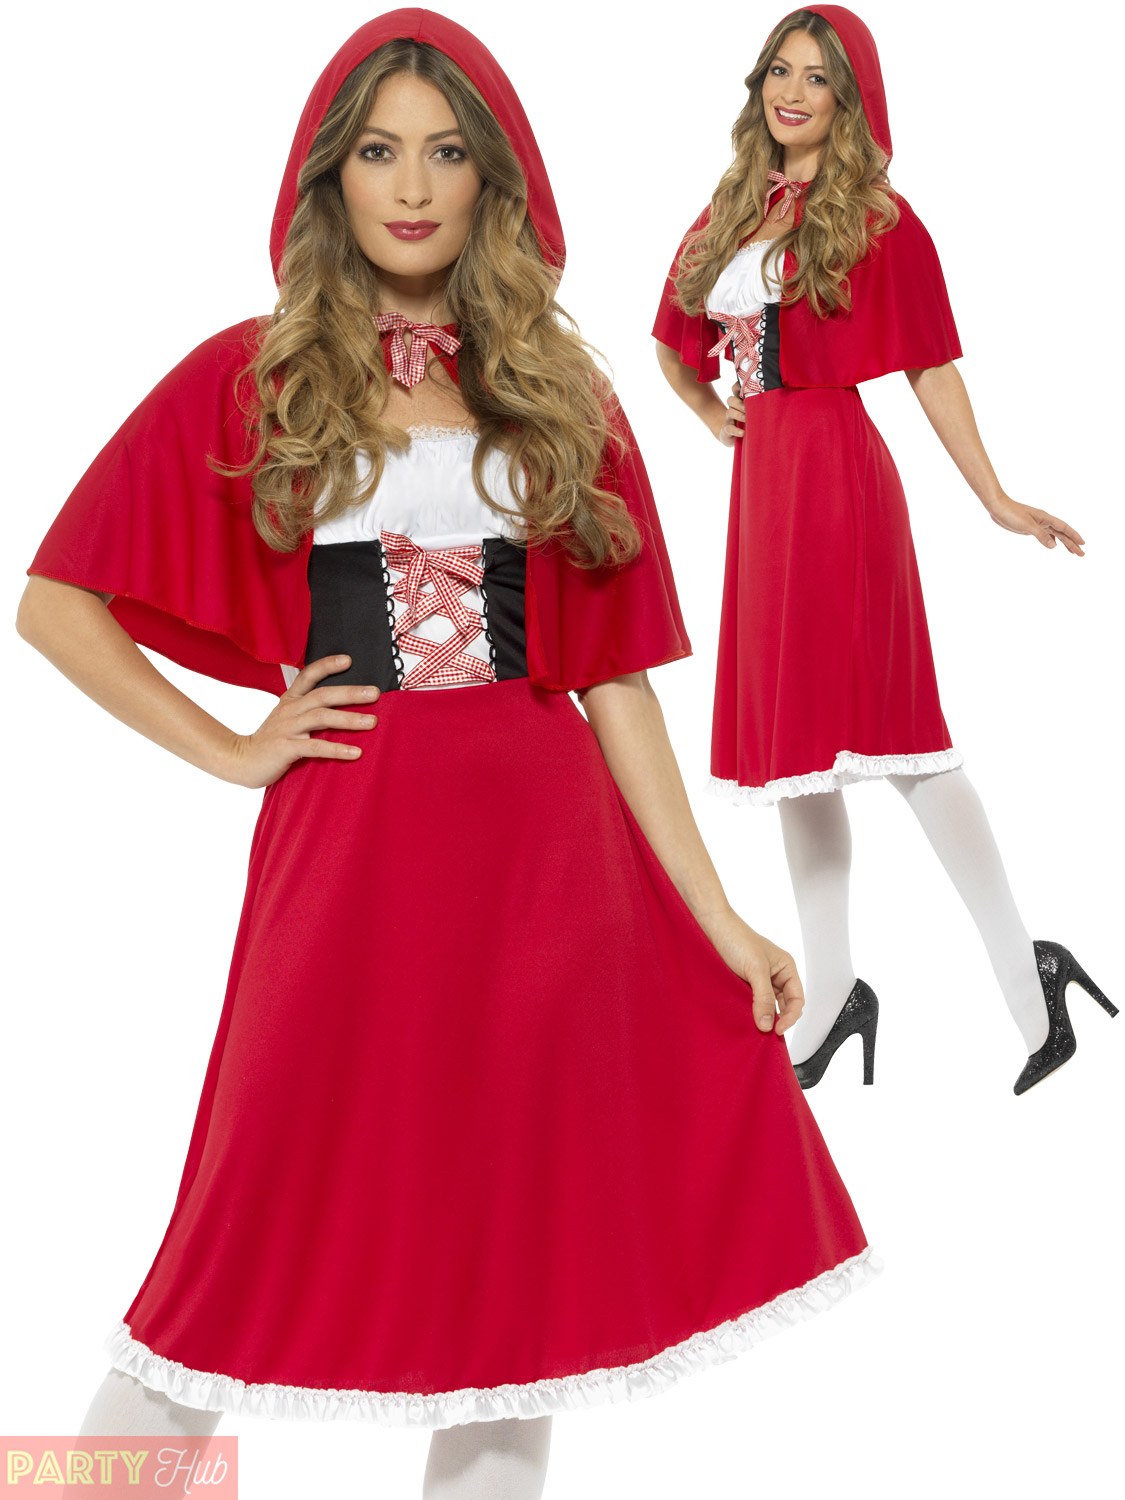 Ladies Red Riding Hood Costume Adults Fairytale Fancy ...